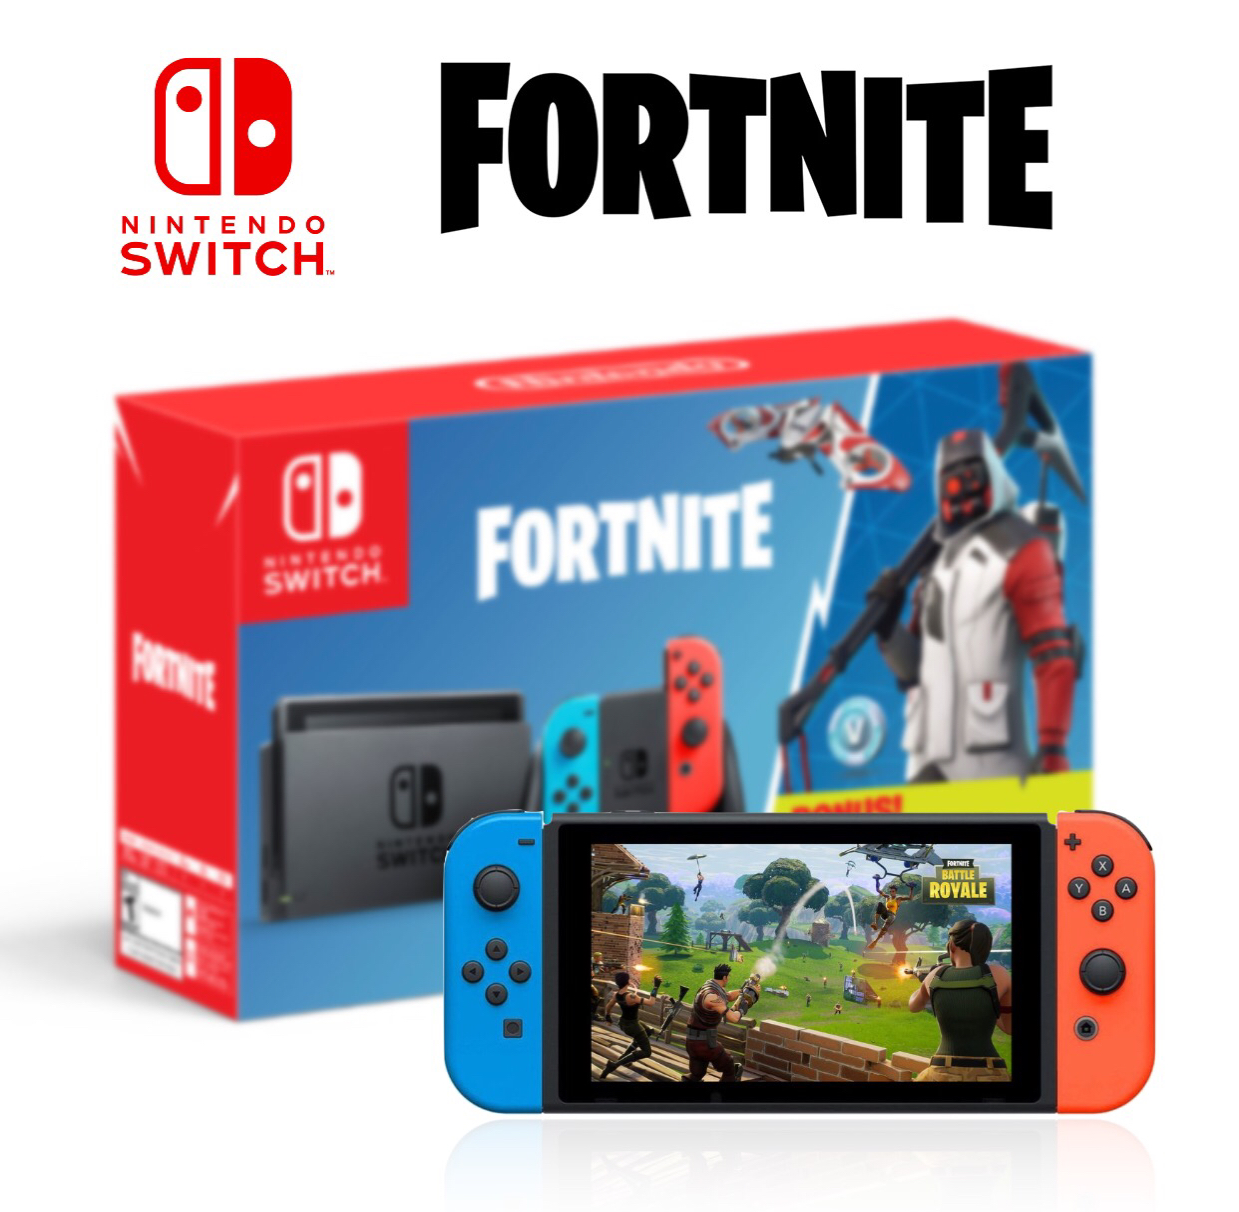 Nintendo Switch Fortnite Double Helix Console Bundle